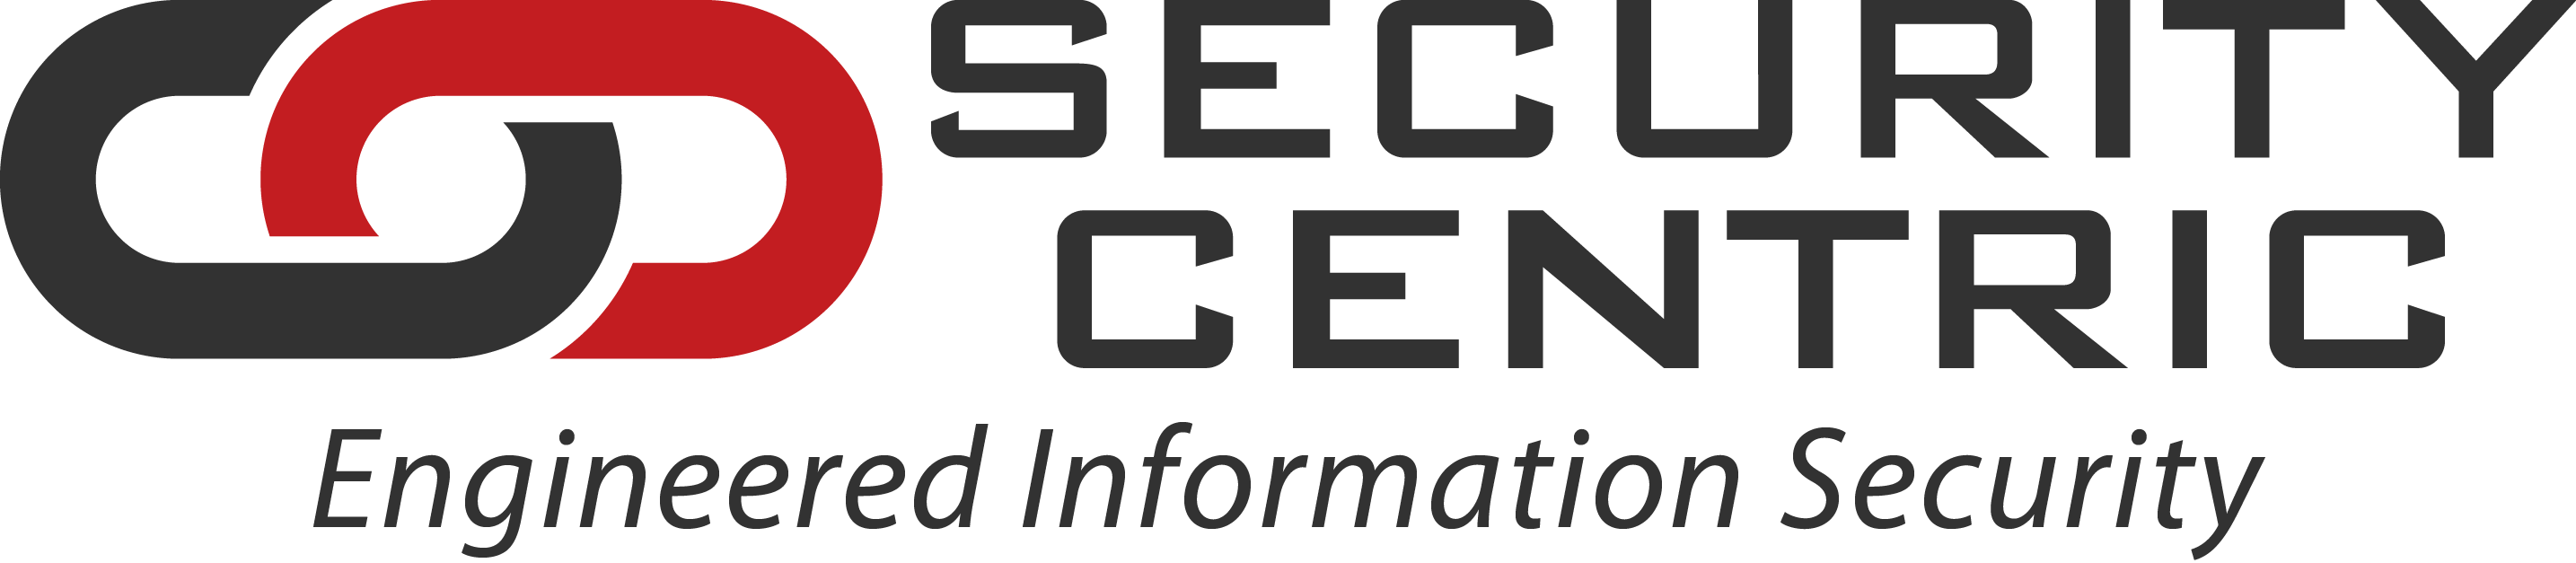 Securit Centric